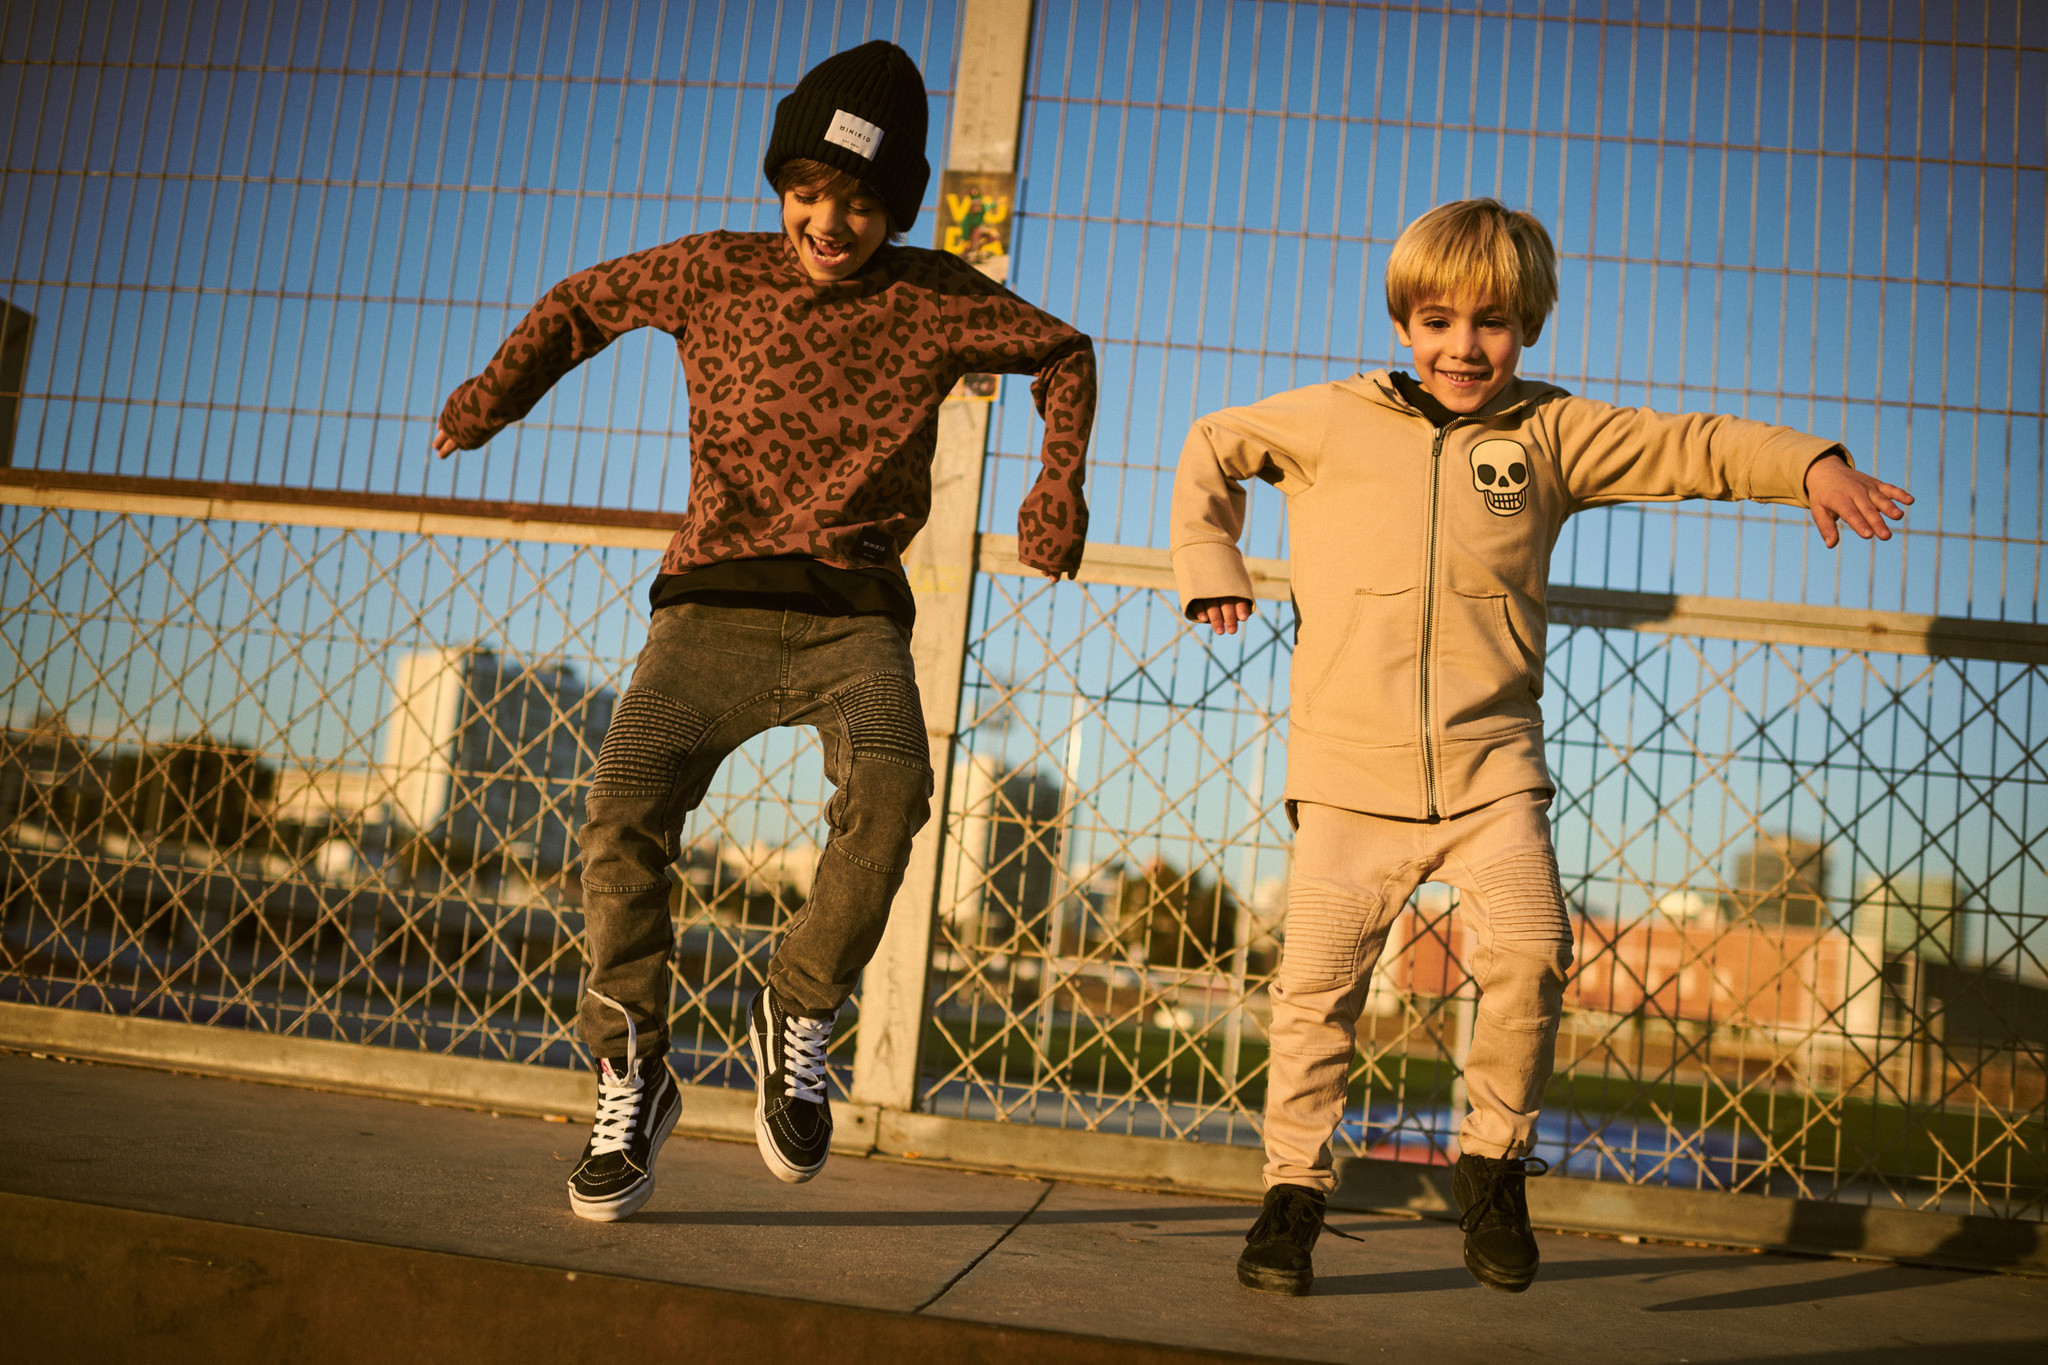 Minikid COOL LONGSLEEVE | LEOPARD SHIRT WITH LONG SLEEVES | MINIKID